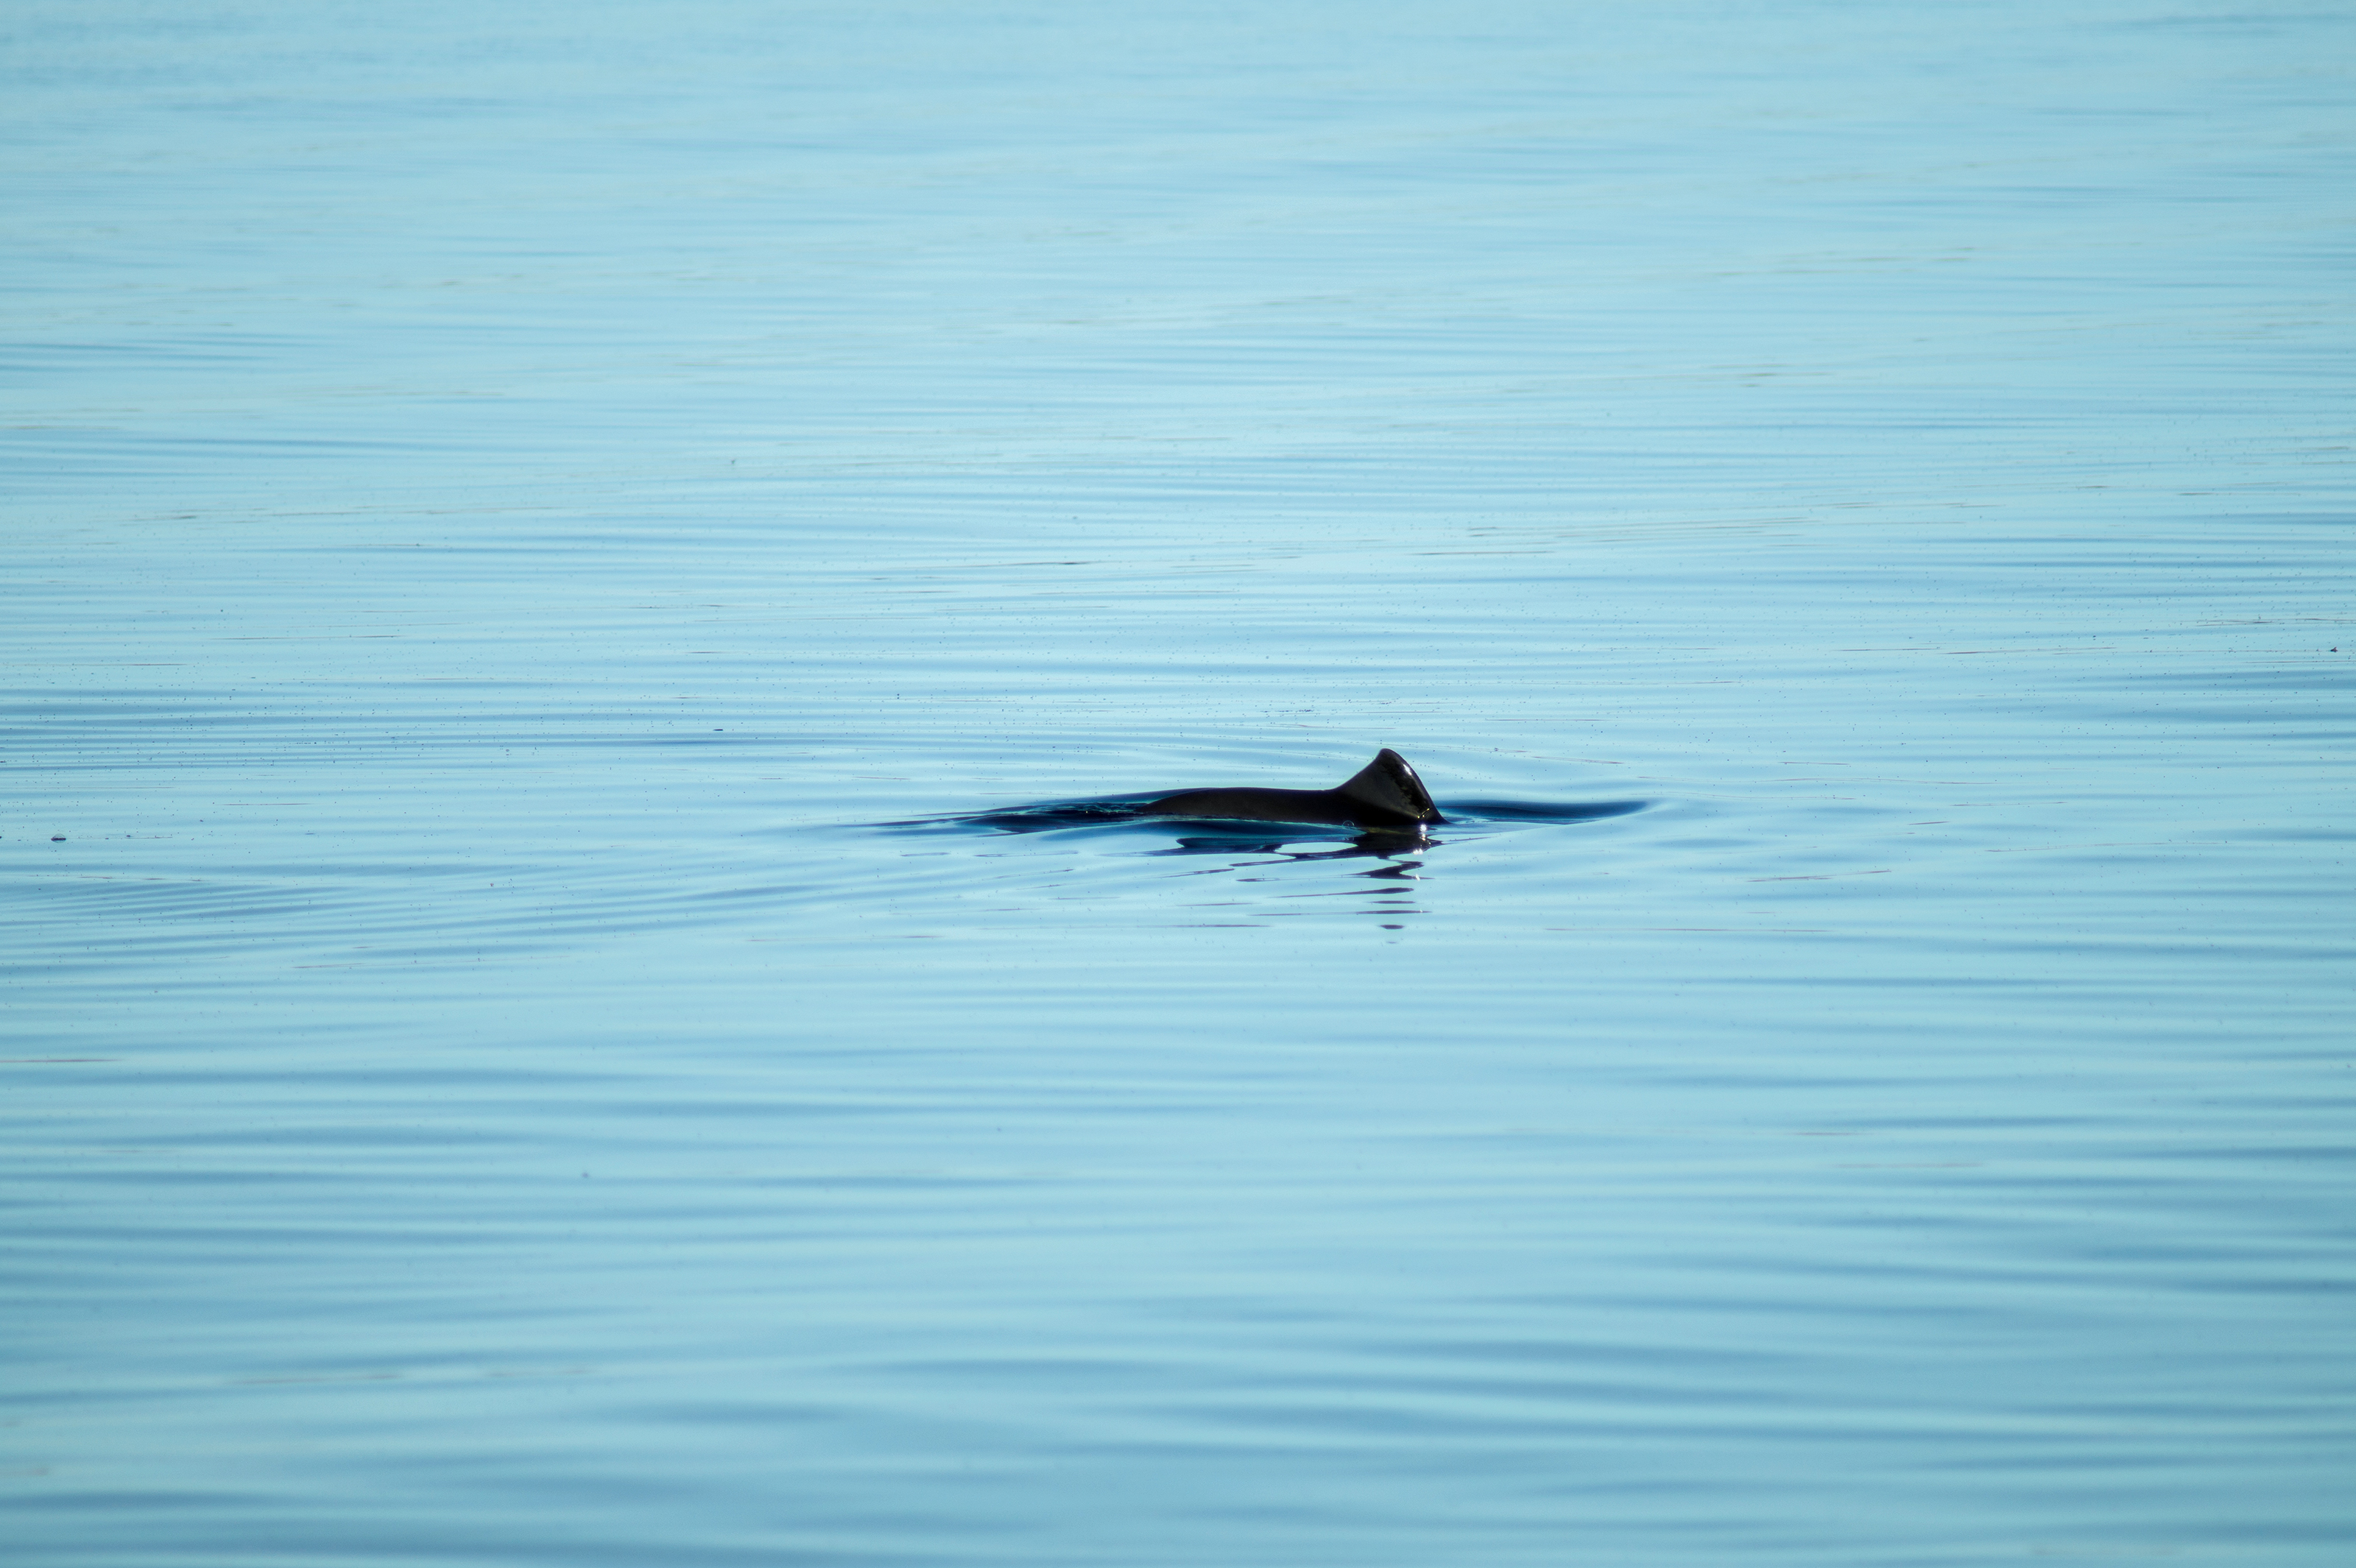 Porpoise fin breaching the water